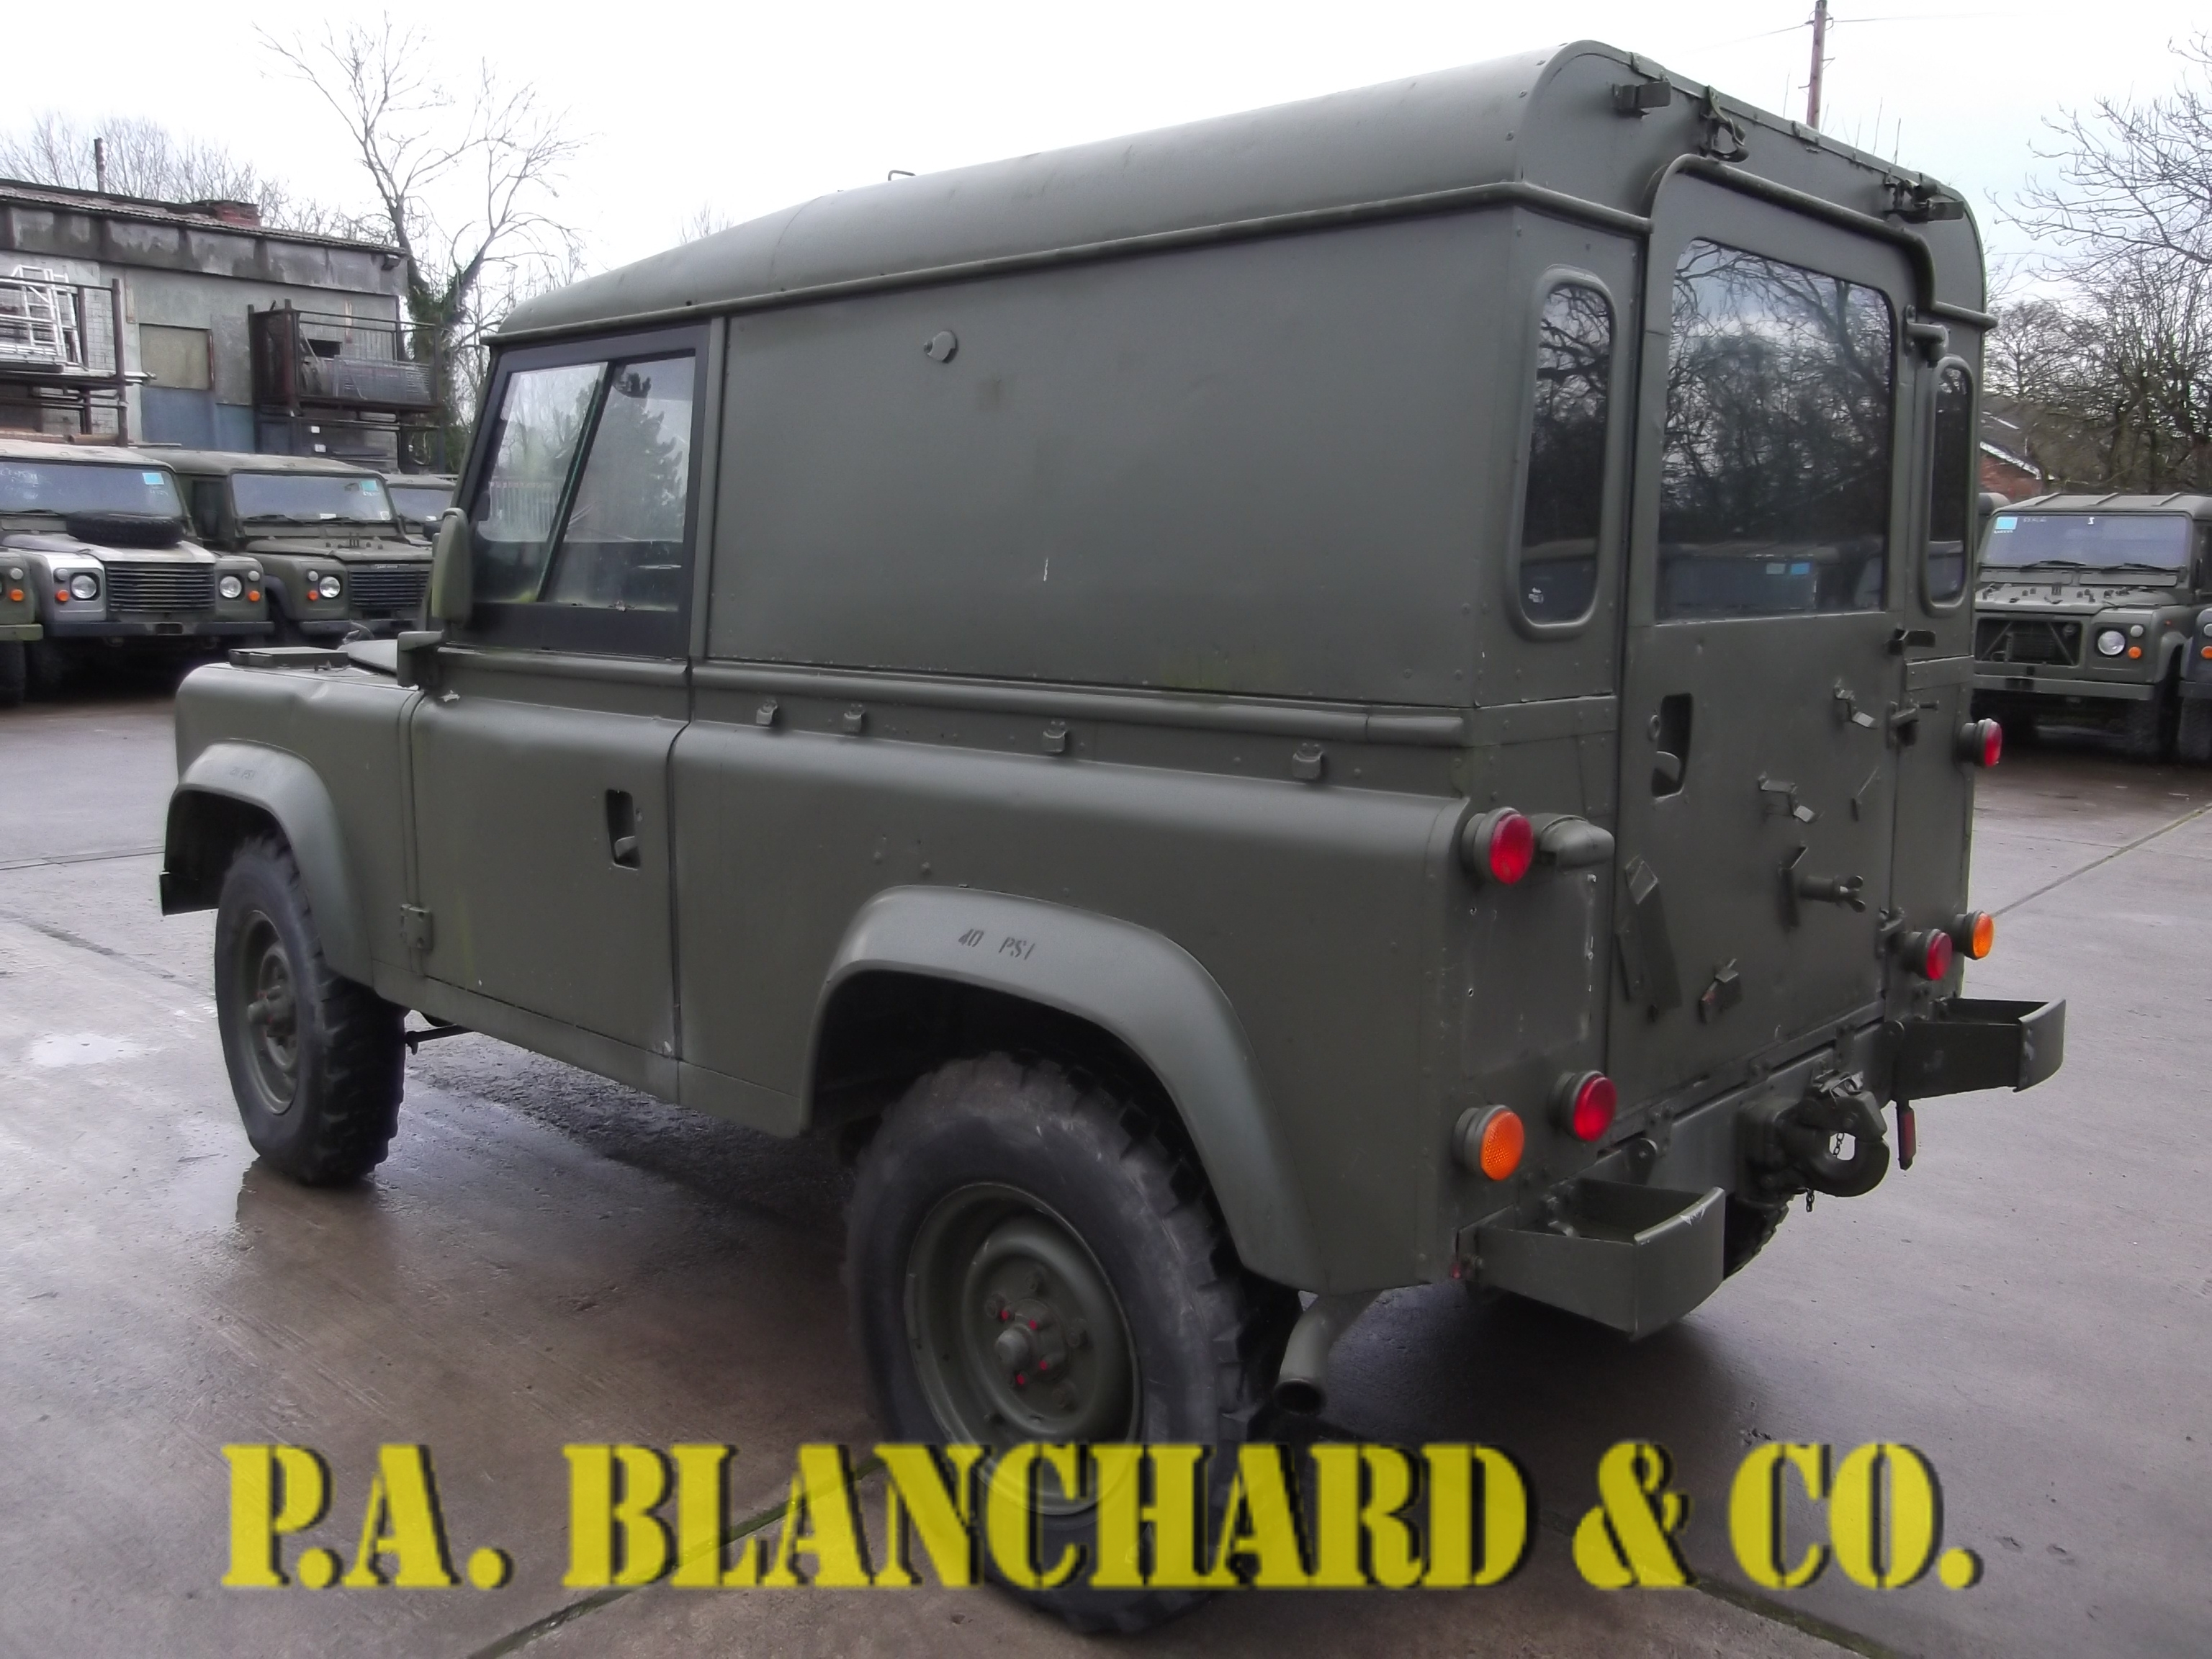 id auction you direct defence the catalogues uk en for sale on tithonus defenders are land a top from hard of witham refurbished defender gb catalogue original landrover bidding lot rover ministry